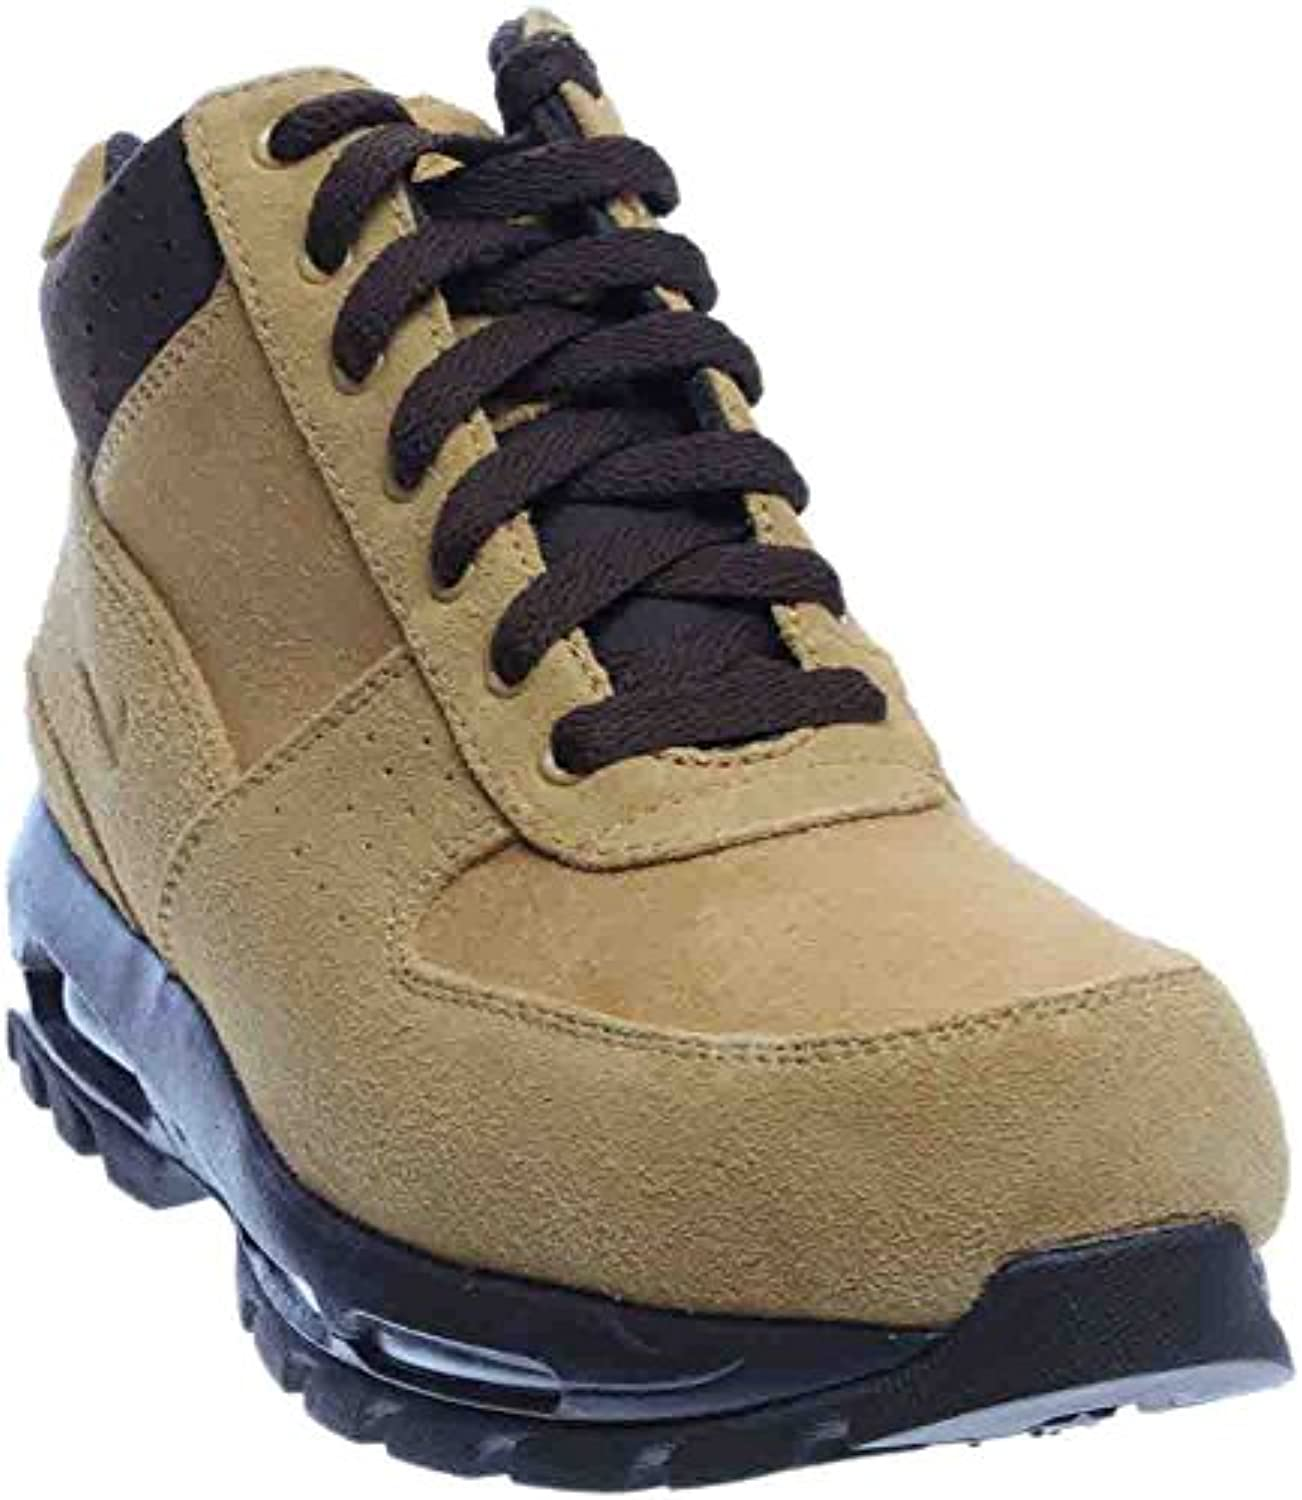 Man/Woman NIKE Air Max Goadome (GS) ACG Big Kids Kids Kids Boots Year-end special promotions stable quality Very good classification HV30274 ffa530